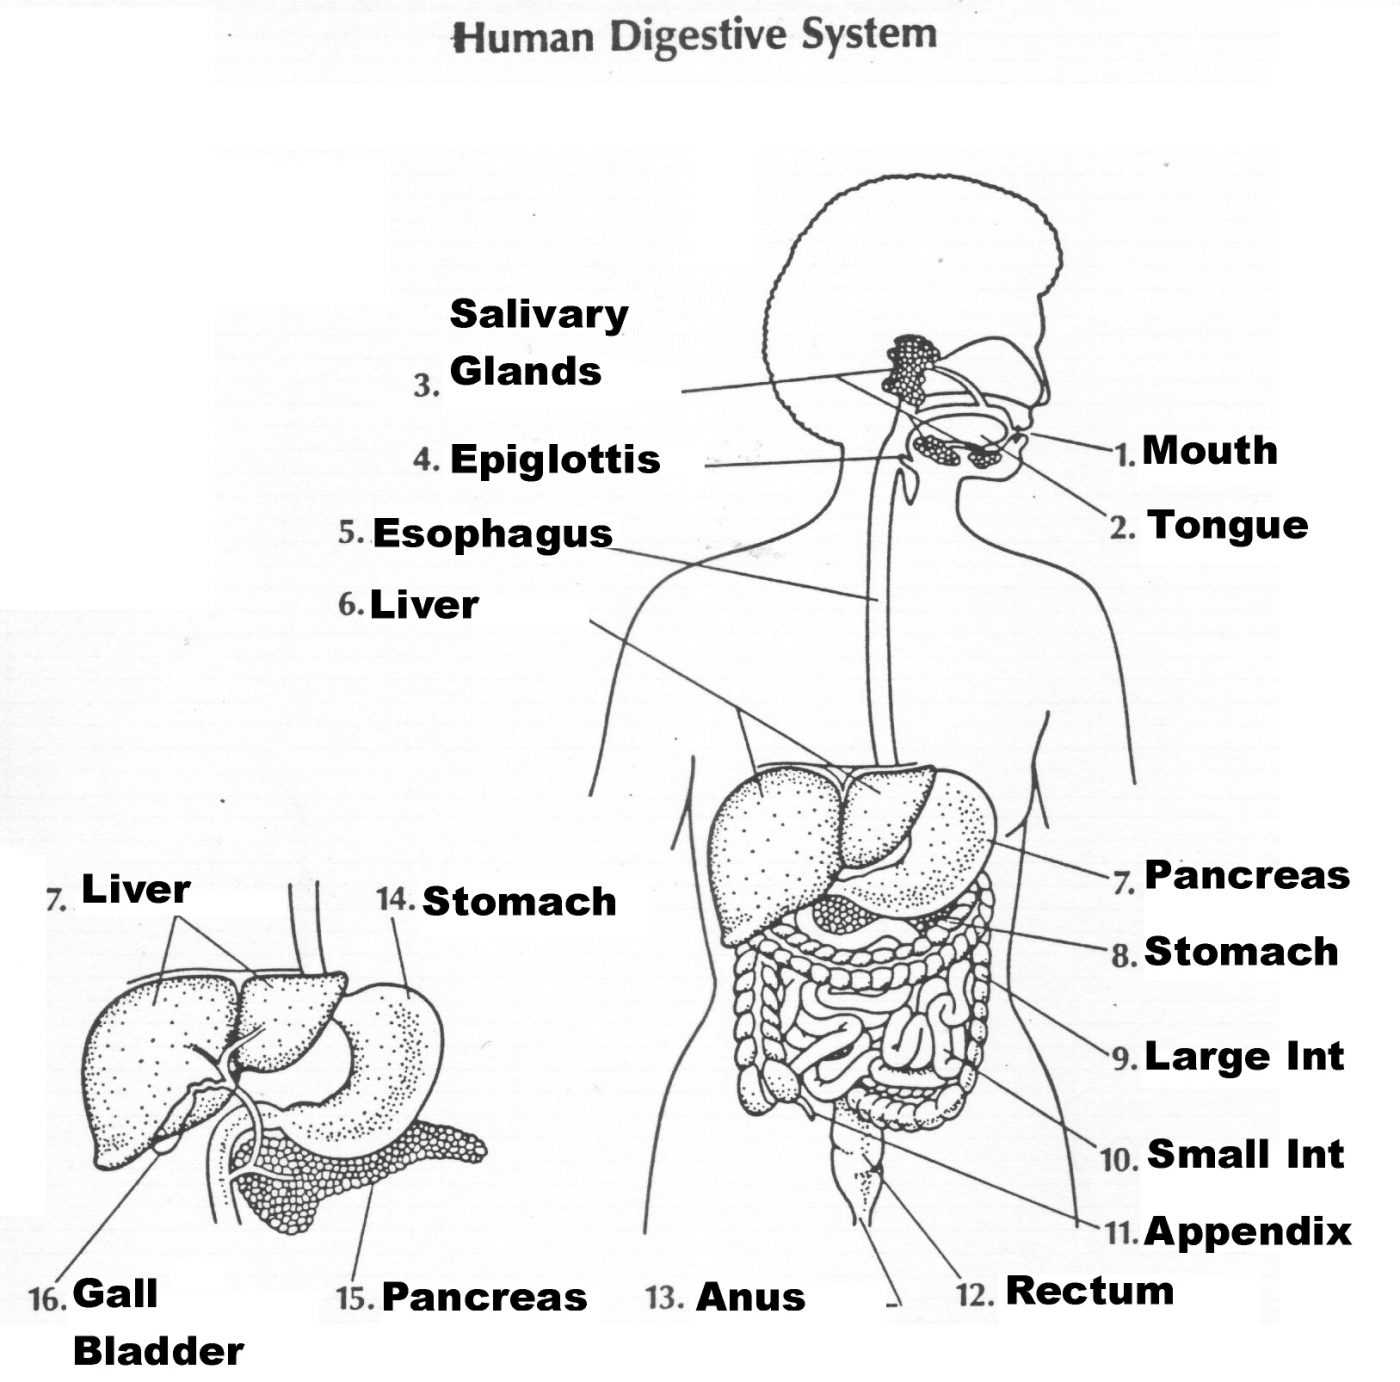 The Human Digestive Tract Worksheet Answers with School